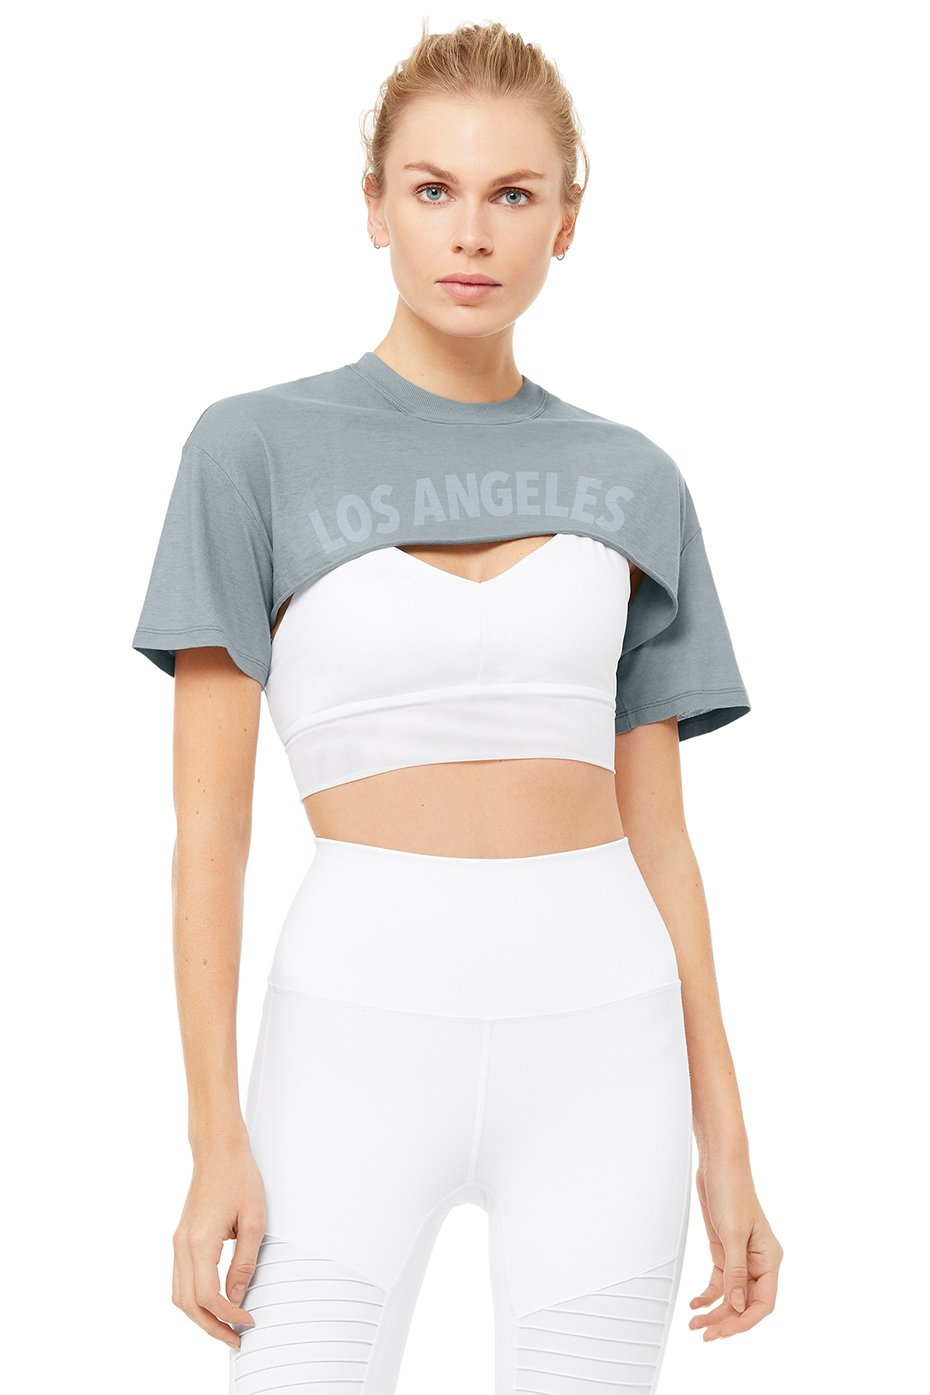 Kylie Jenner donning a Grey Alo Yoga cropped t shirt with short sleeves and a crew neck